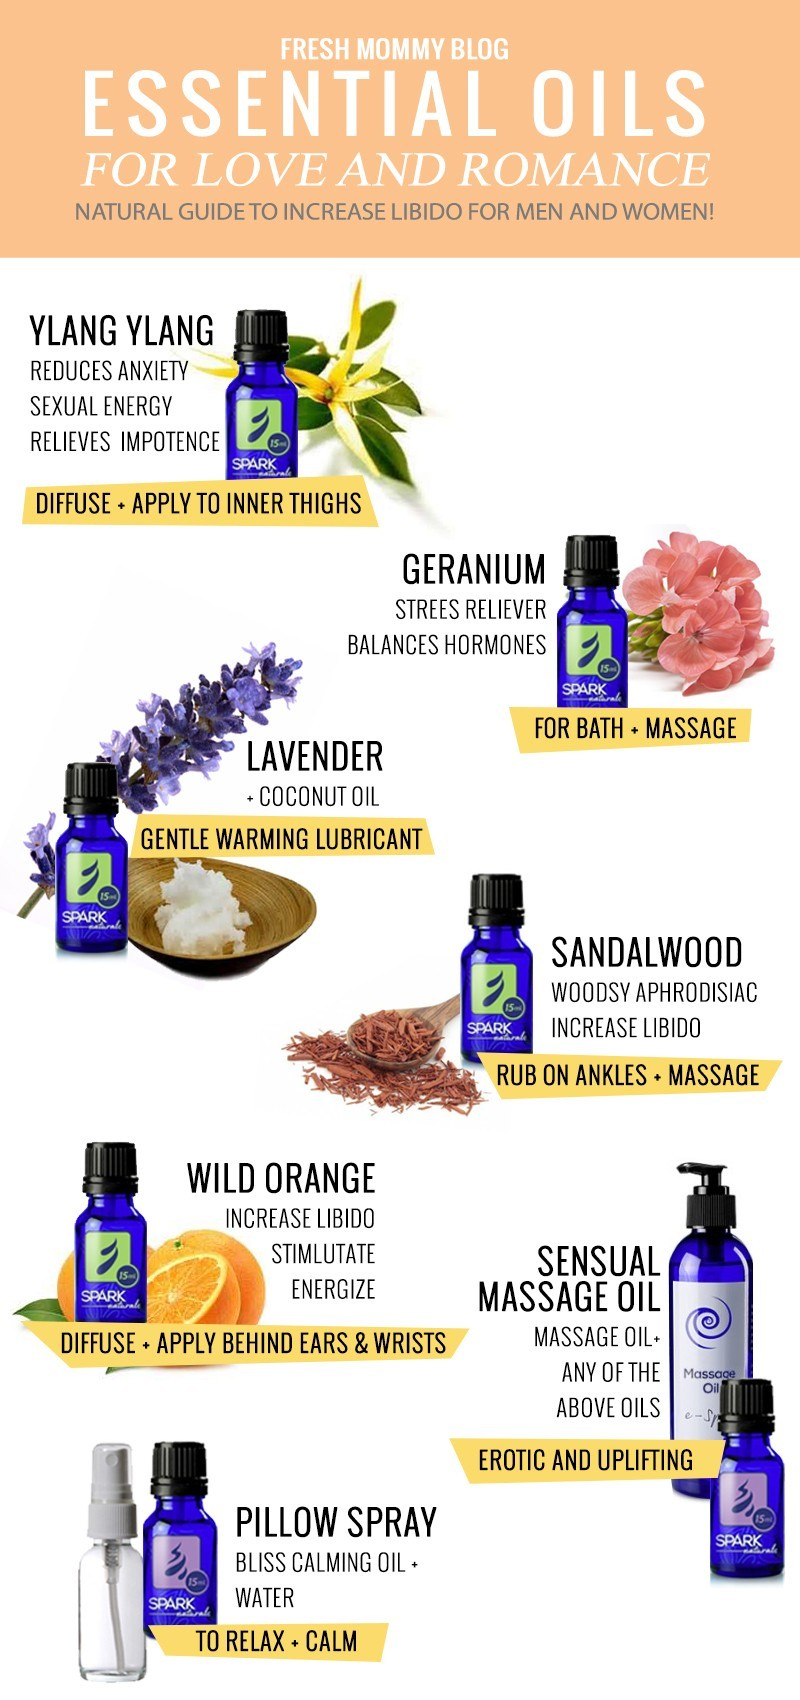 use essential oils to boost libido, as an aphrodisiac and for romance! - essential oils for romance and love by popular Florida lifestyle blogger Fresh Mommy Blog